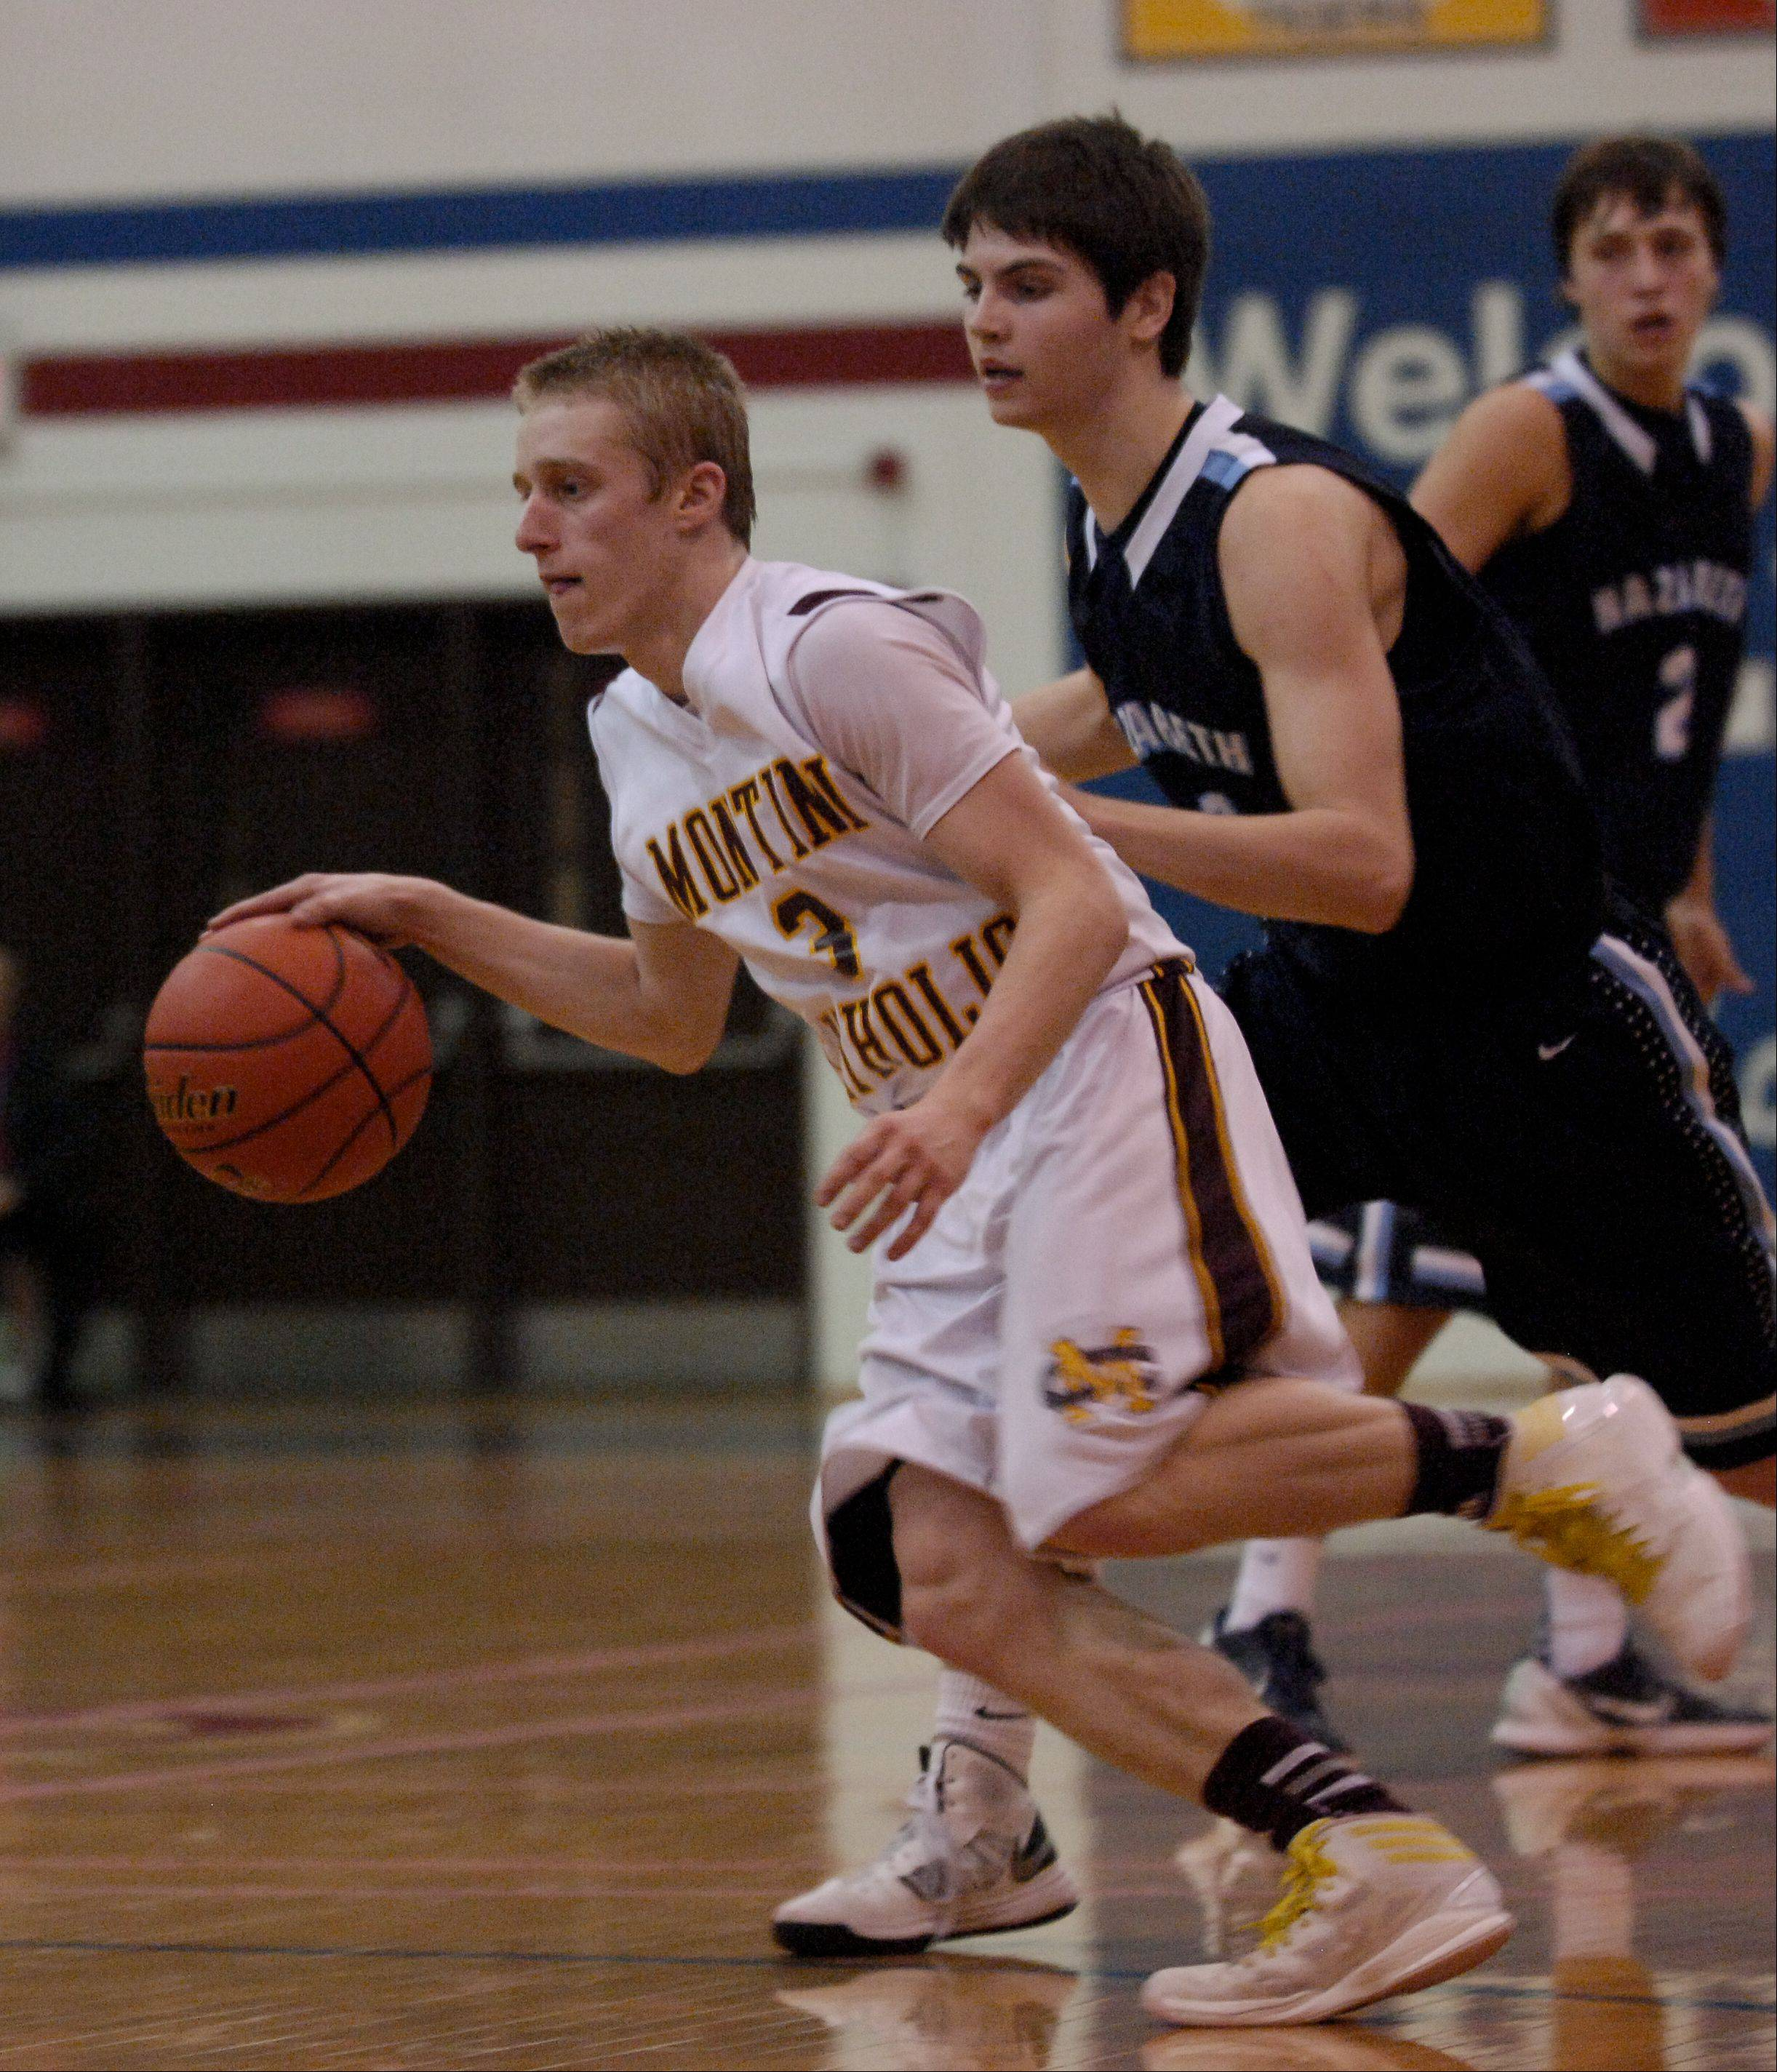 Logan Goss of Montini drives with the ball.